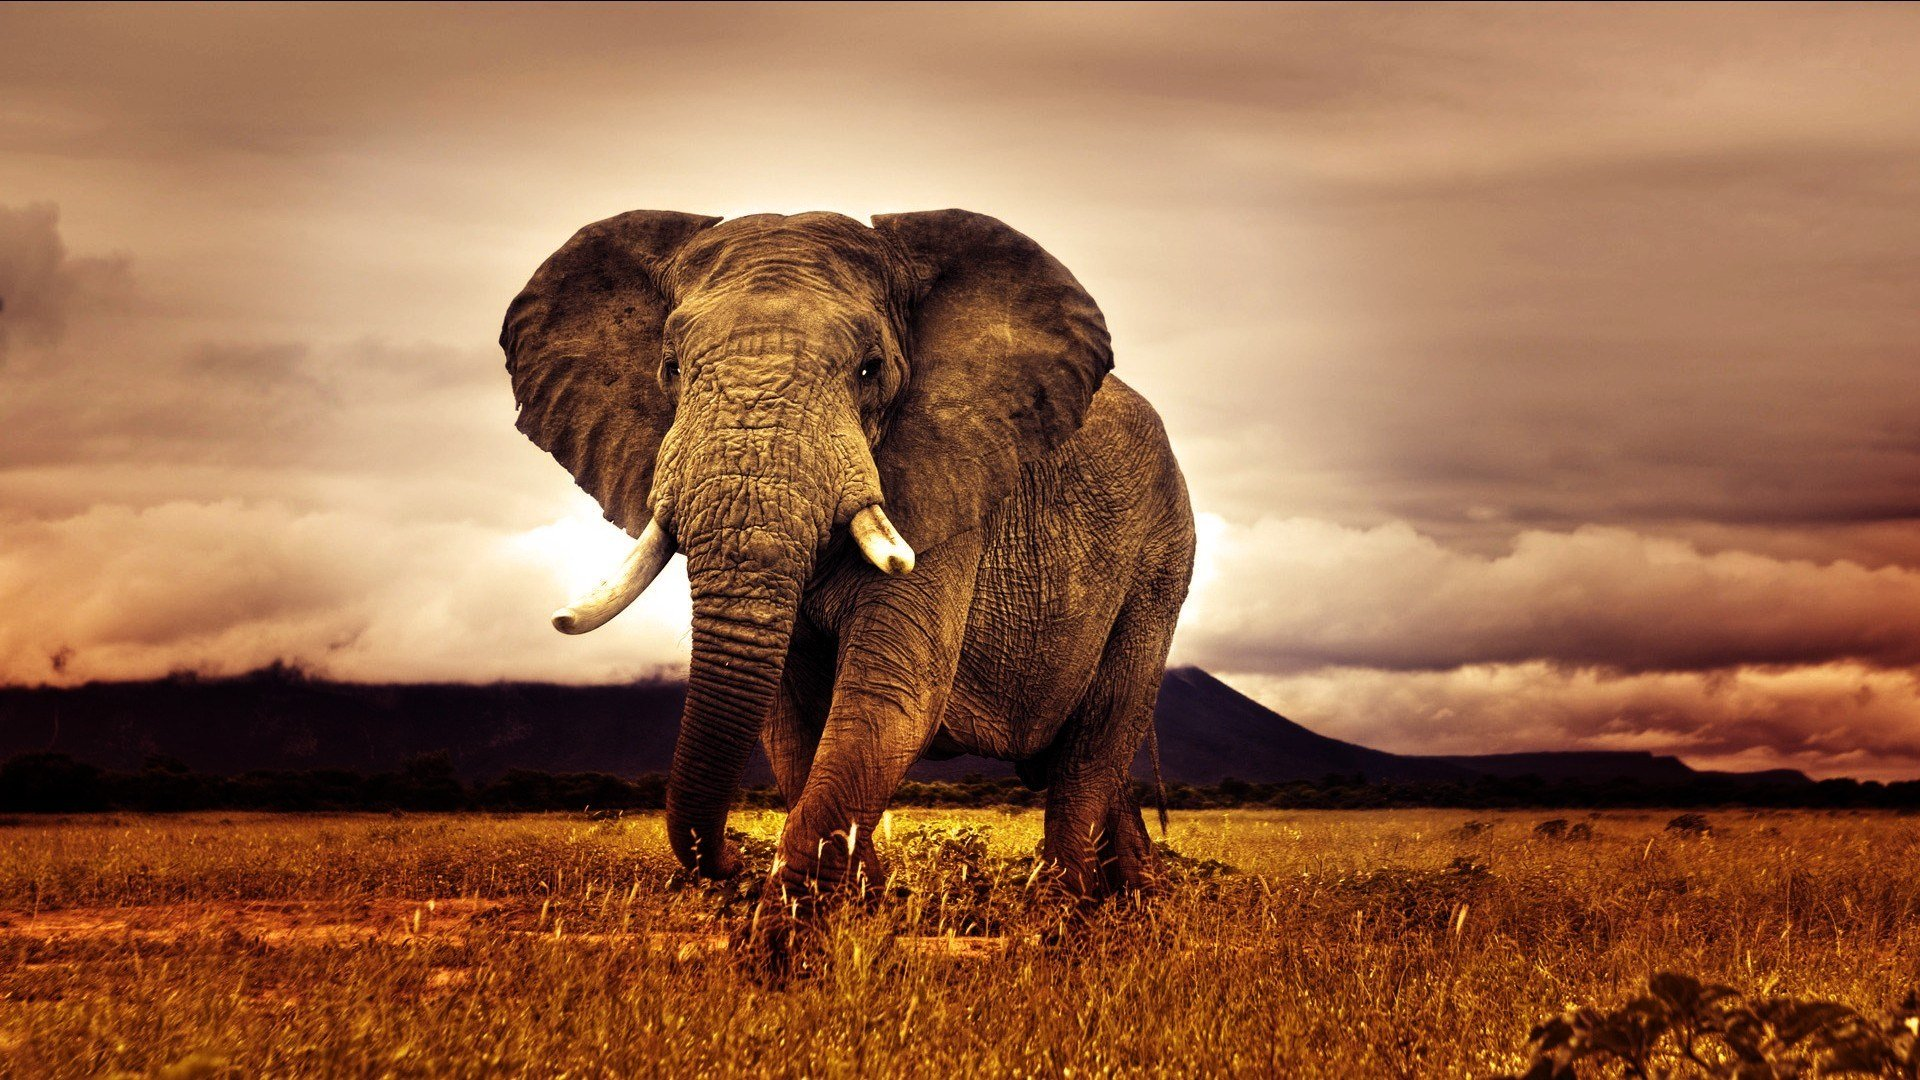 Free download Elephant background ID:132593 full hd 1920x1080 for desktop